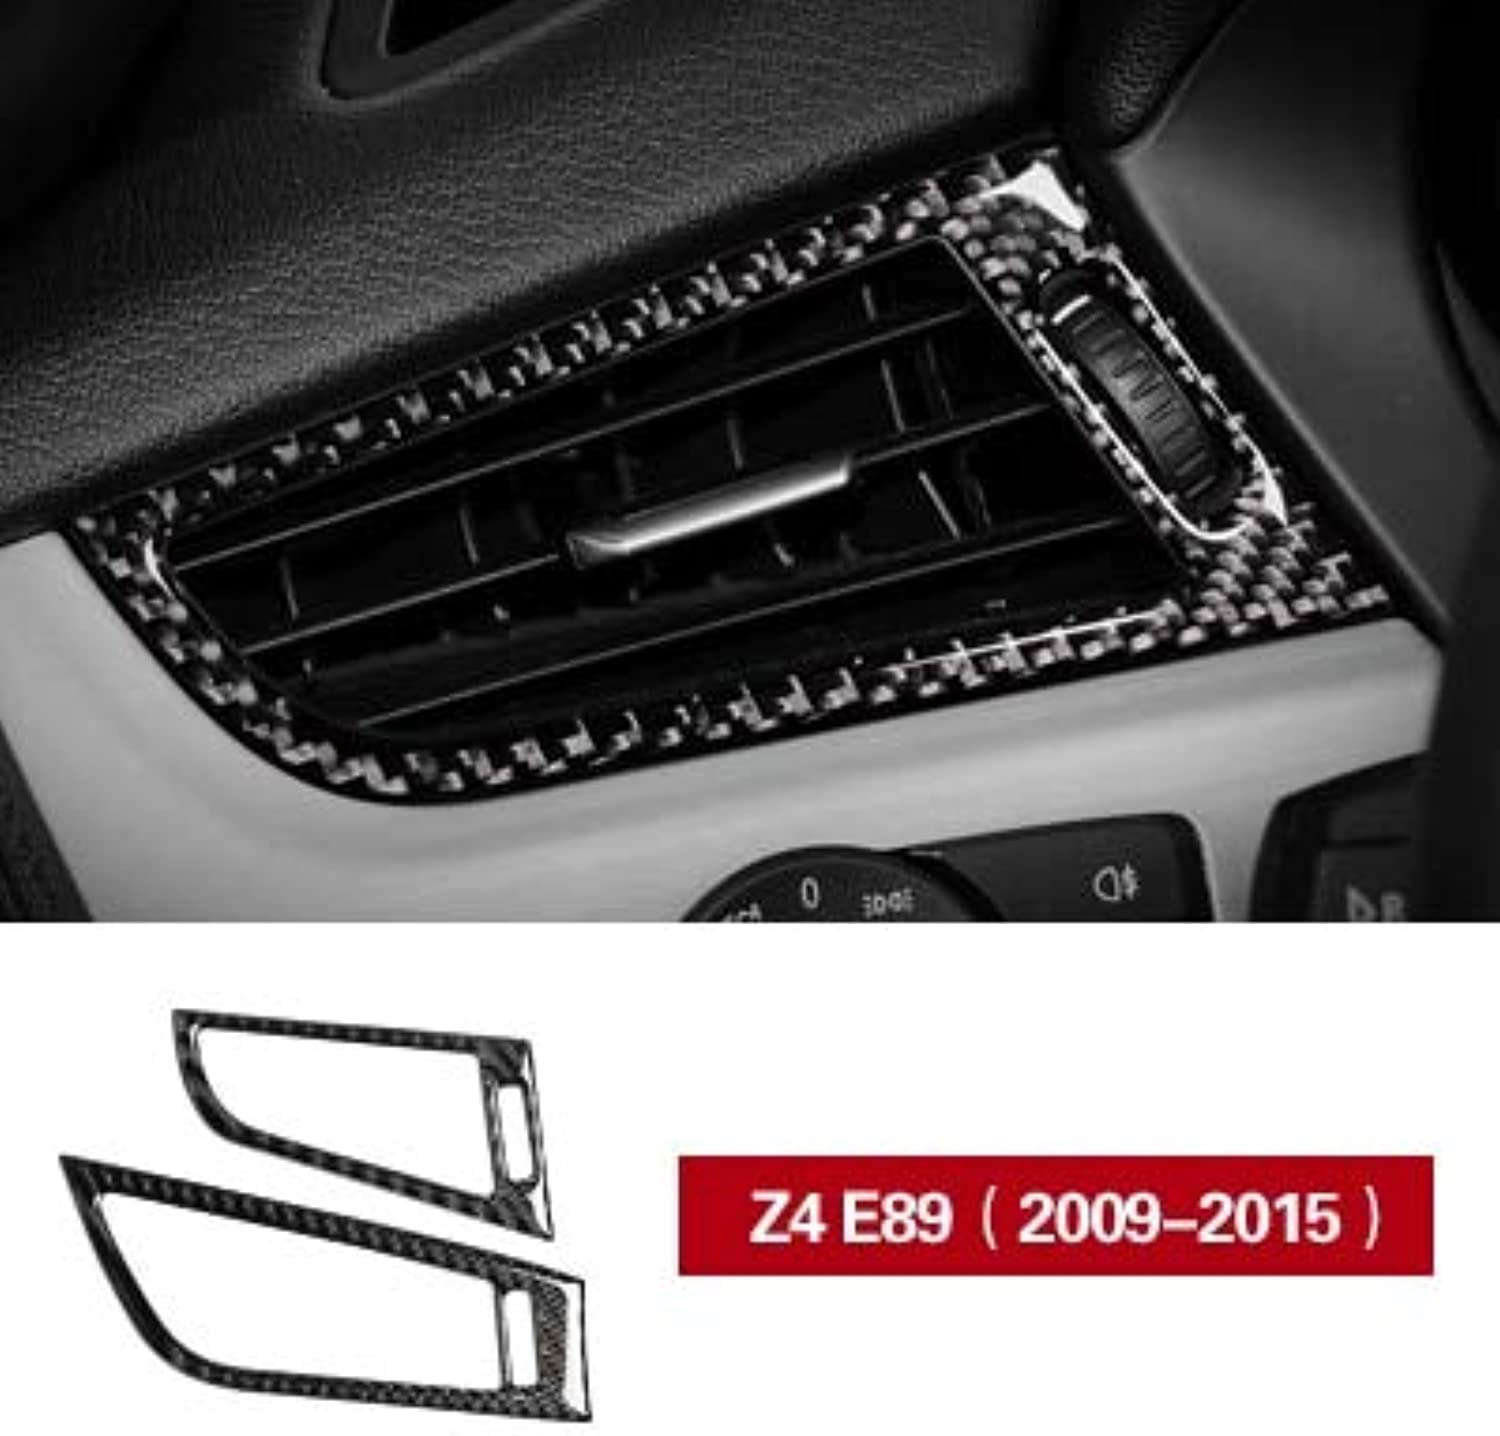 Car Side Air Condition Vent Outlet Frame Carbon Fiber car Stickers and Decal Styling for BMW Z4 E89 20092015 Accessories  (color Name  Z4 E89 (20092015))